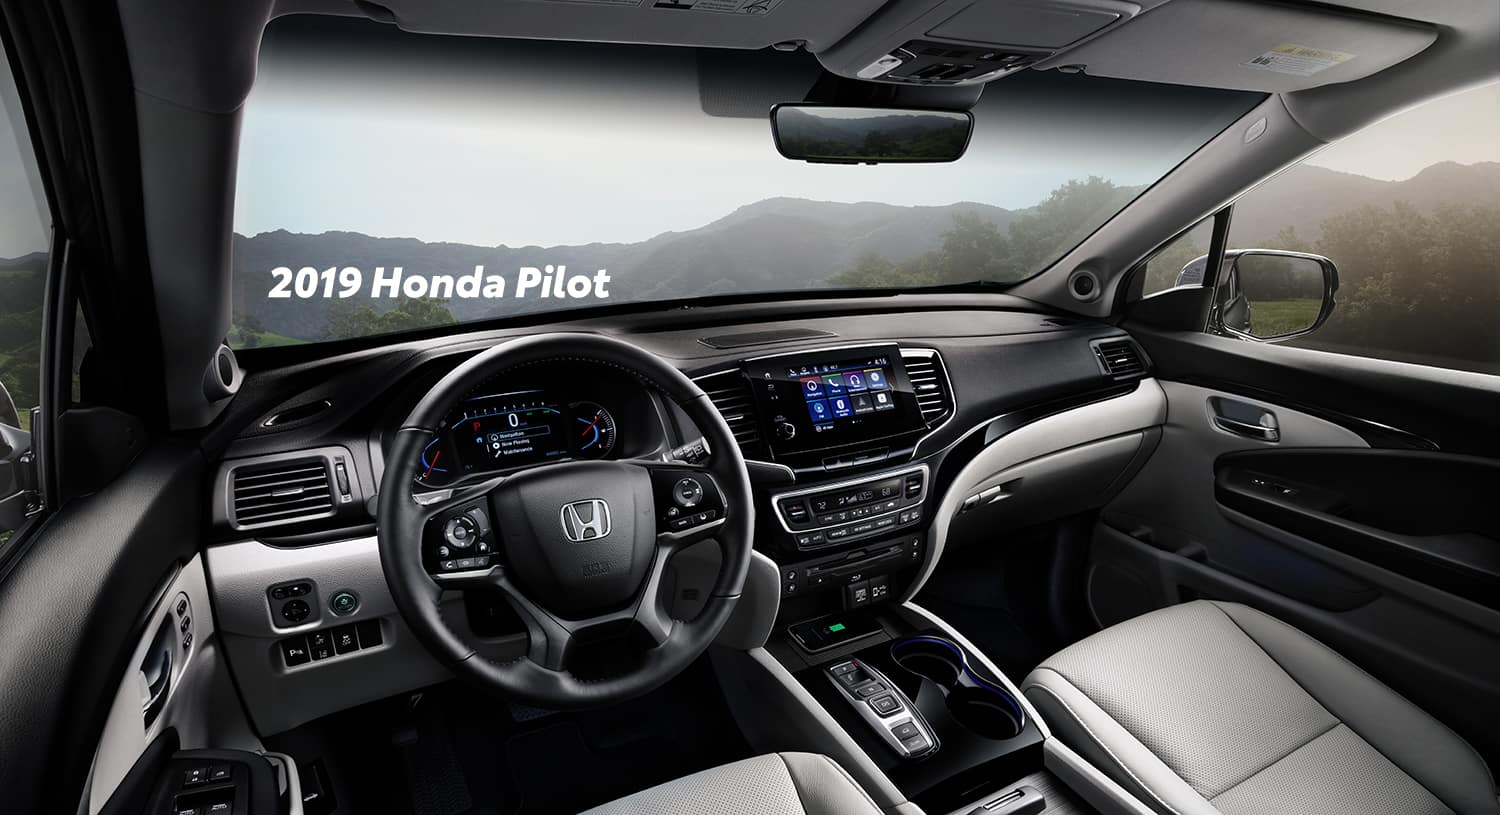 Comparison of the 2019 Pilot versus 2019 CR-V at Boch Honda of Norwood | The interior of the 2019 Honda Pilot